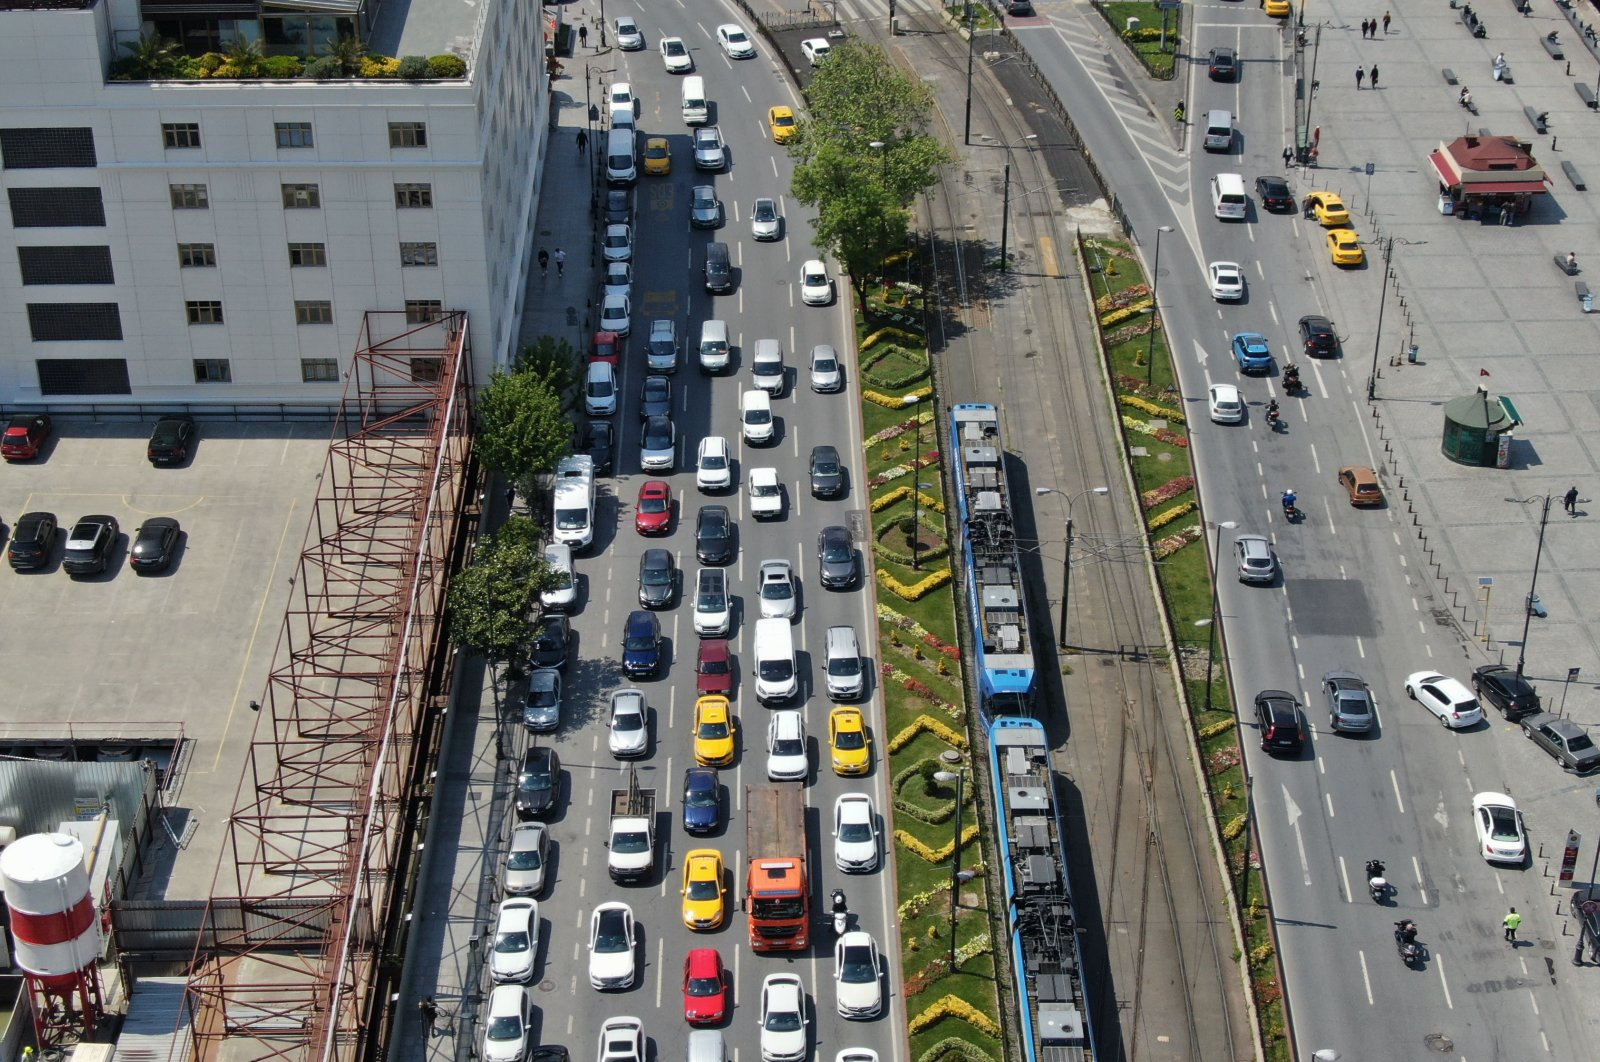 This photo of a traffic jam captured in the historic Eminönü district prompted Health Minister Fahrettin Koca to issue fresh warnings about the virus threat, Istanbul, Turkey, May 7, 2020. (DHA Photo)